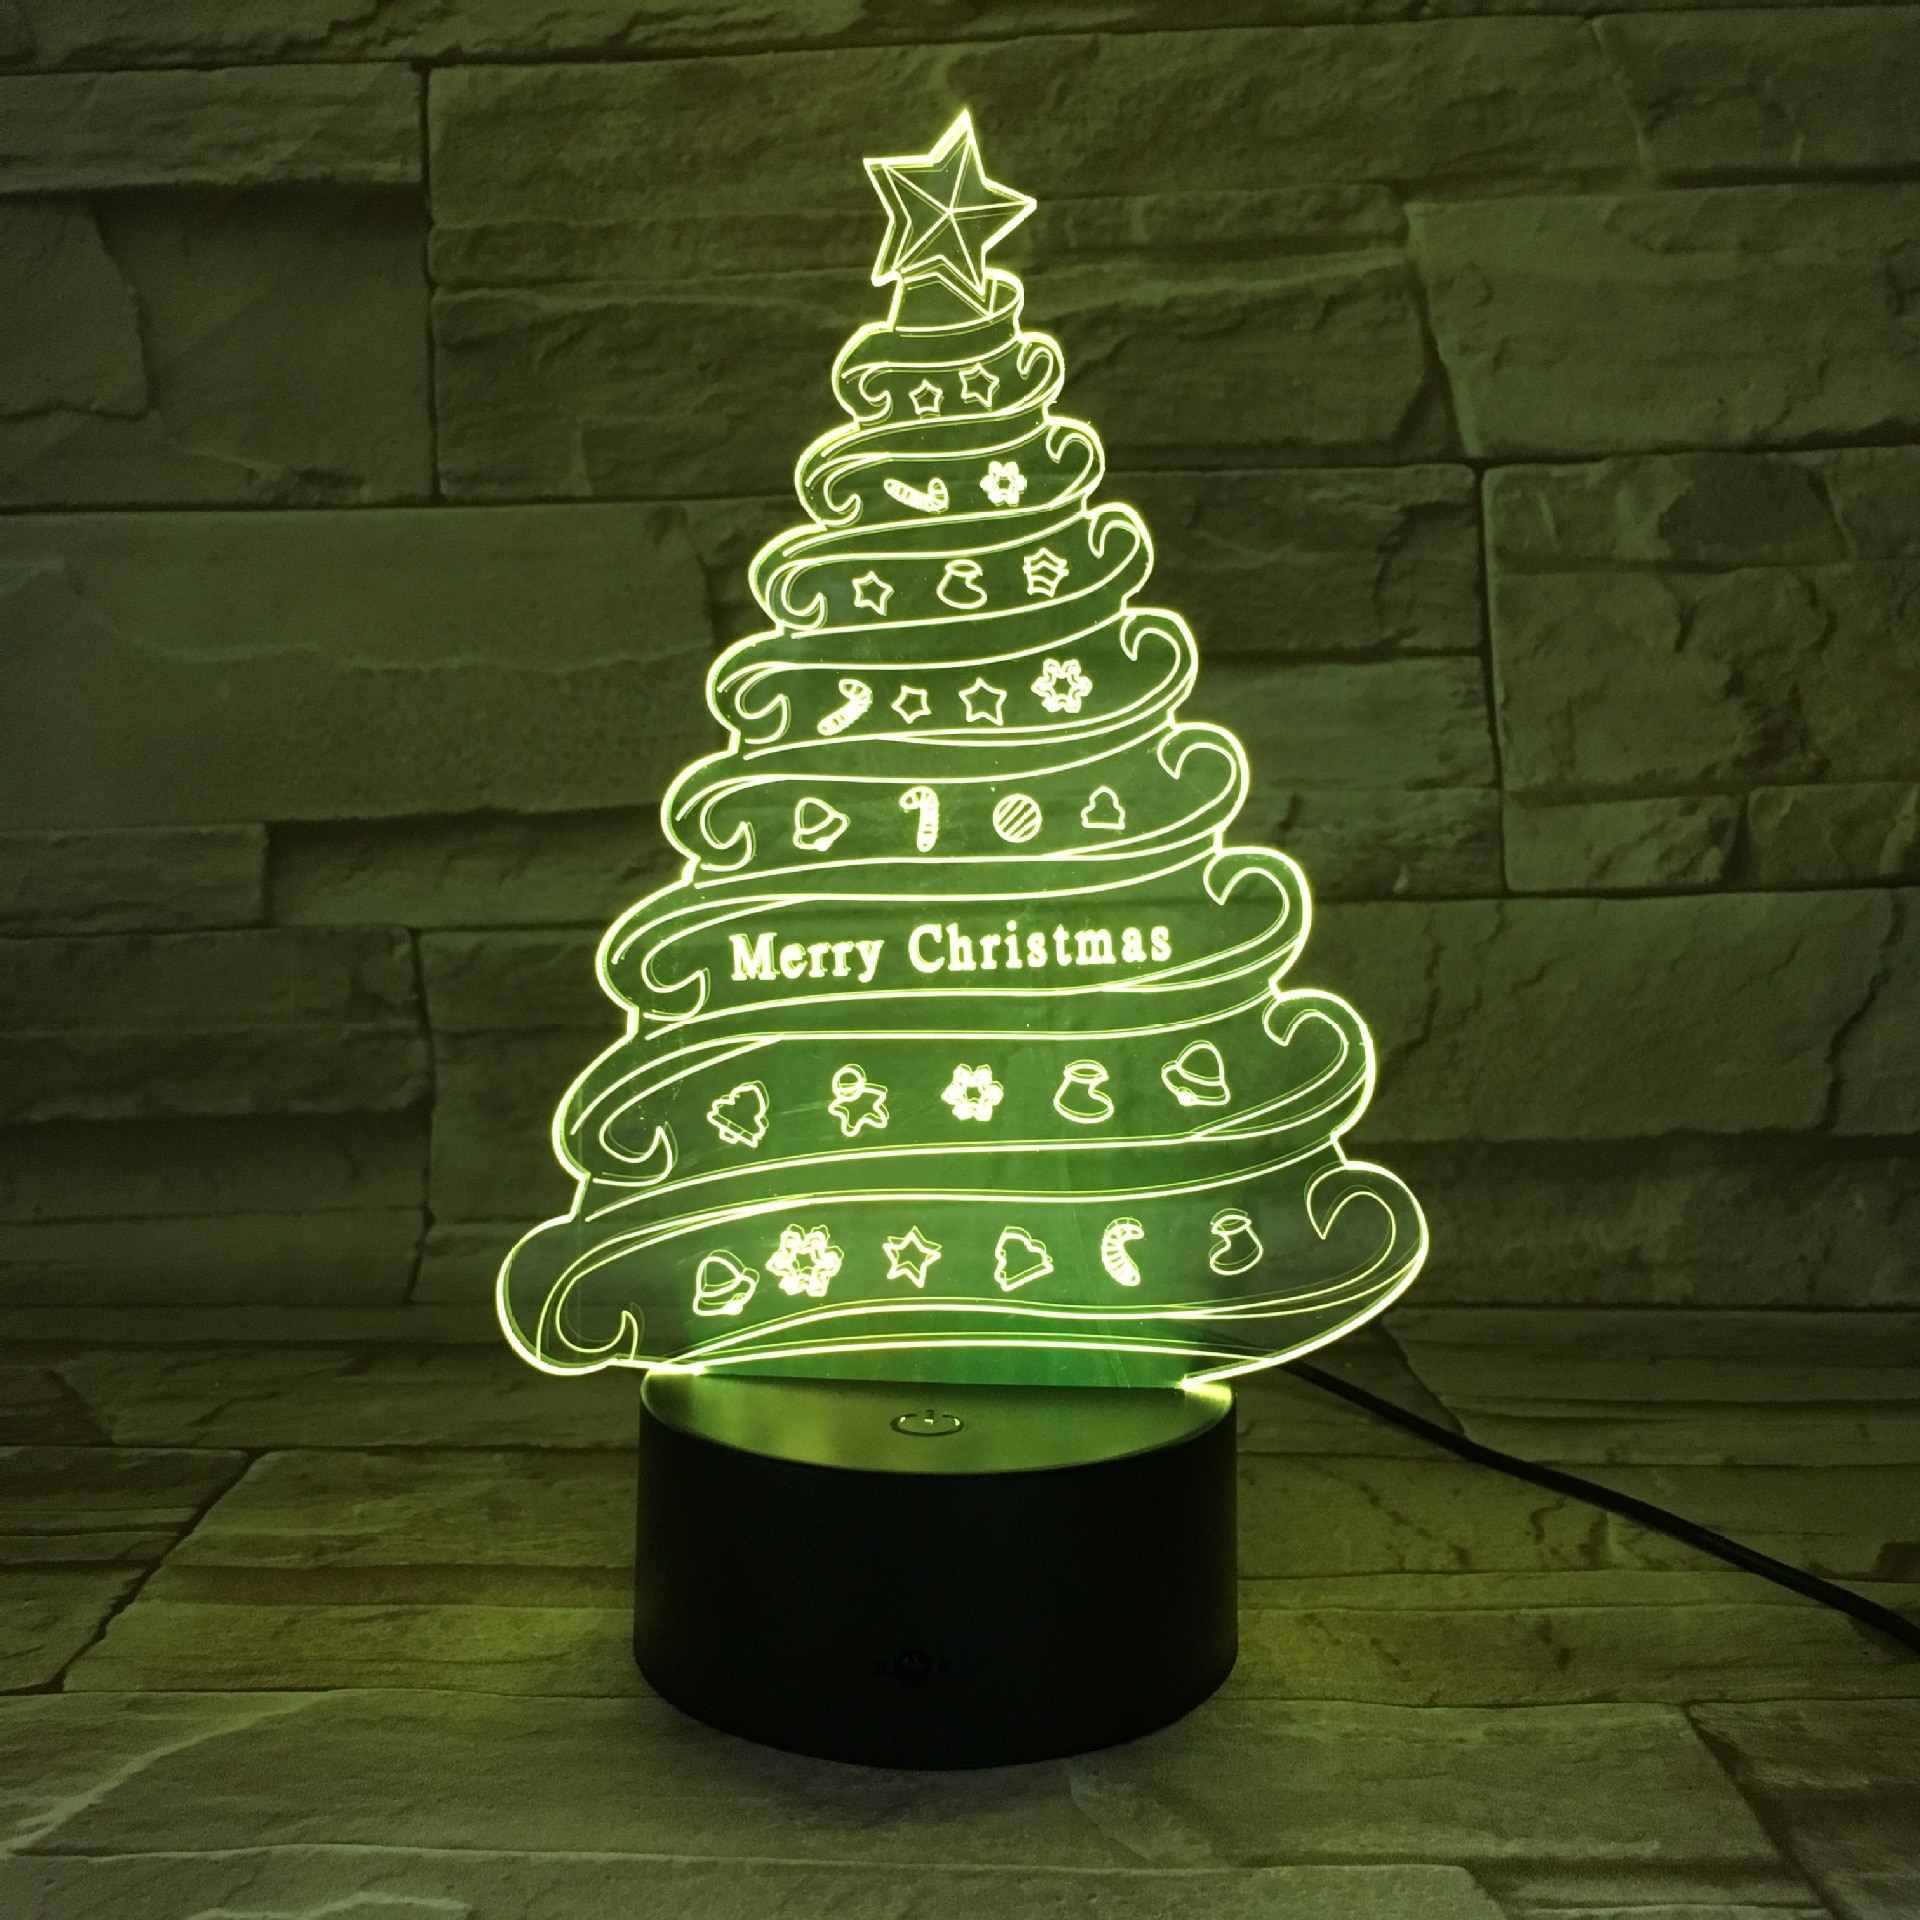 3D Christmas Tree Night Light Colorful LED Table Lamp Christmas Decoration For Bedrooms Children's Rooms  Indoor Lighting 2018 special offer time limited christmas tree new led christmas lighting yard decoration 1 6m led backdrop lamp h199